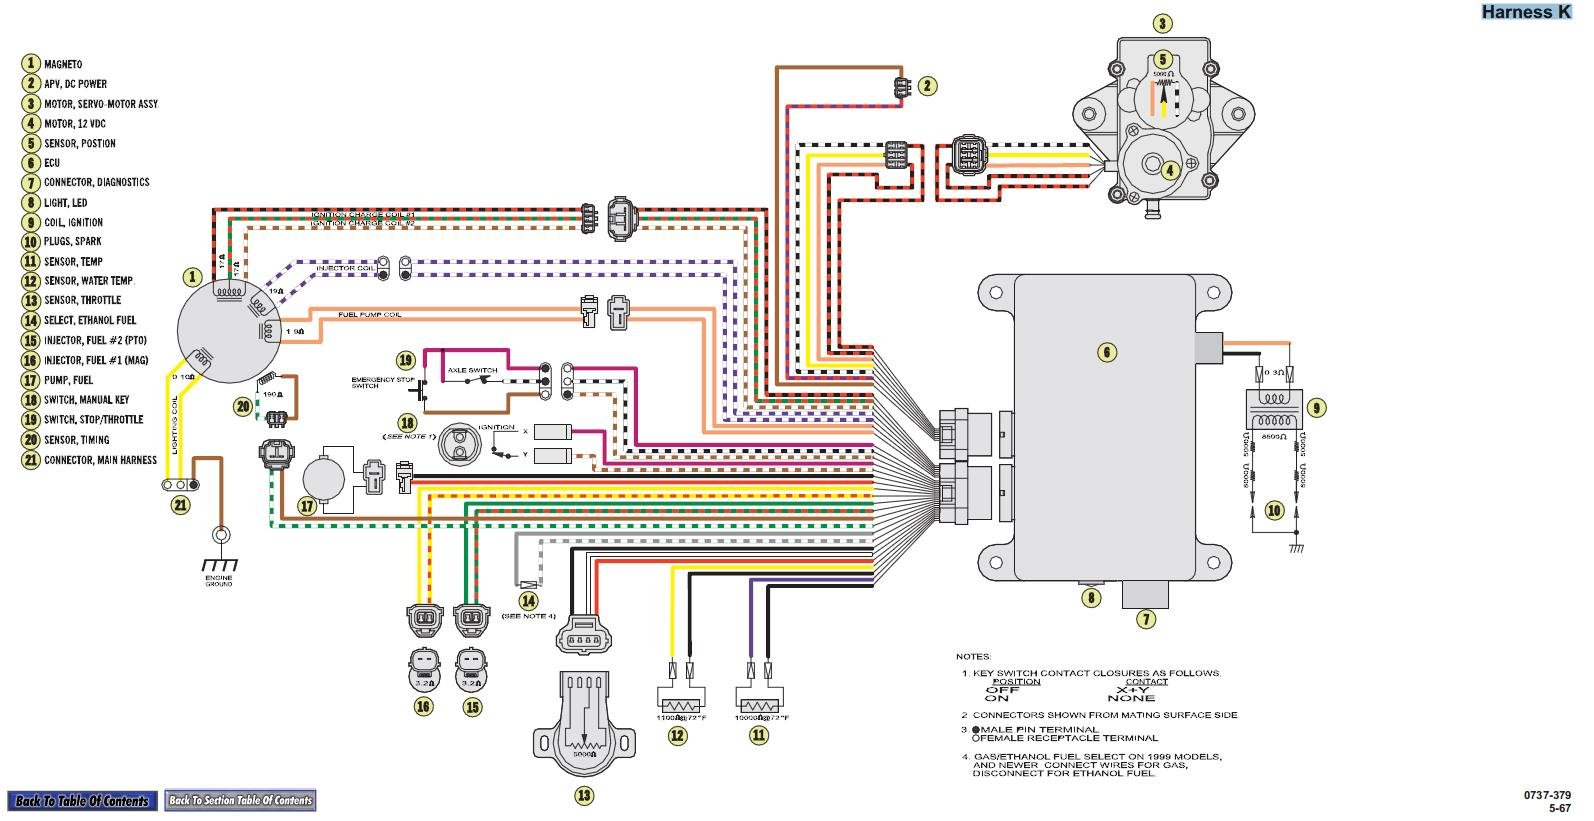 hight resolution of cat zr 800 wiring diagram besides polaris sportsman 500 wiring rh 11 51 shareplm de 2005 polaris sportsman 800 wiring diagram 2009 polaris sportsman 800